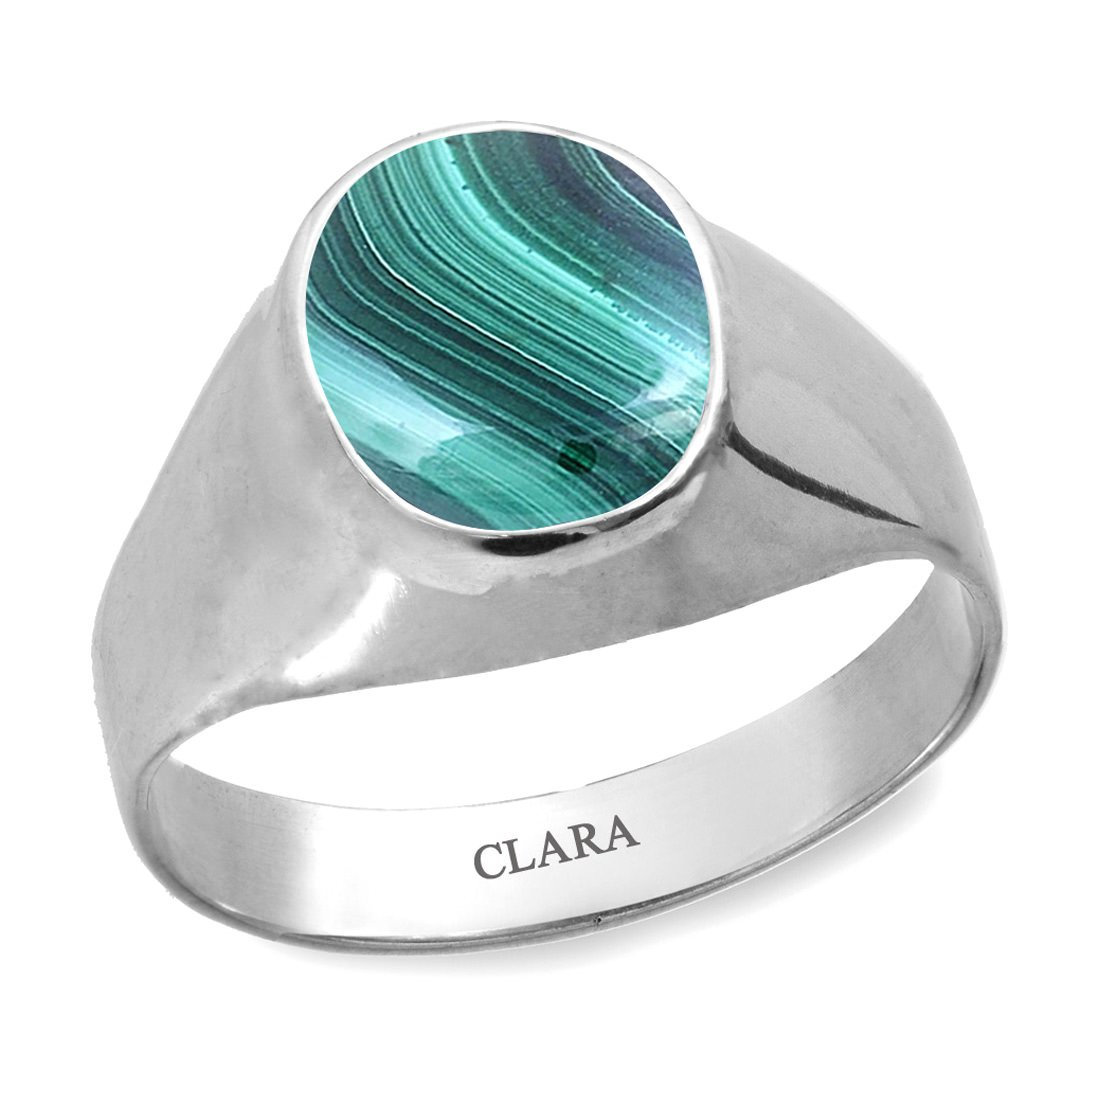 9.3cts or 10.25ratti original stone Sterling Silver Astrological Ring for Men and Women CLARA Certified Malachite Daana Firang